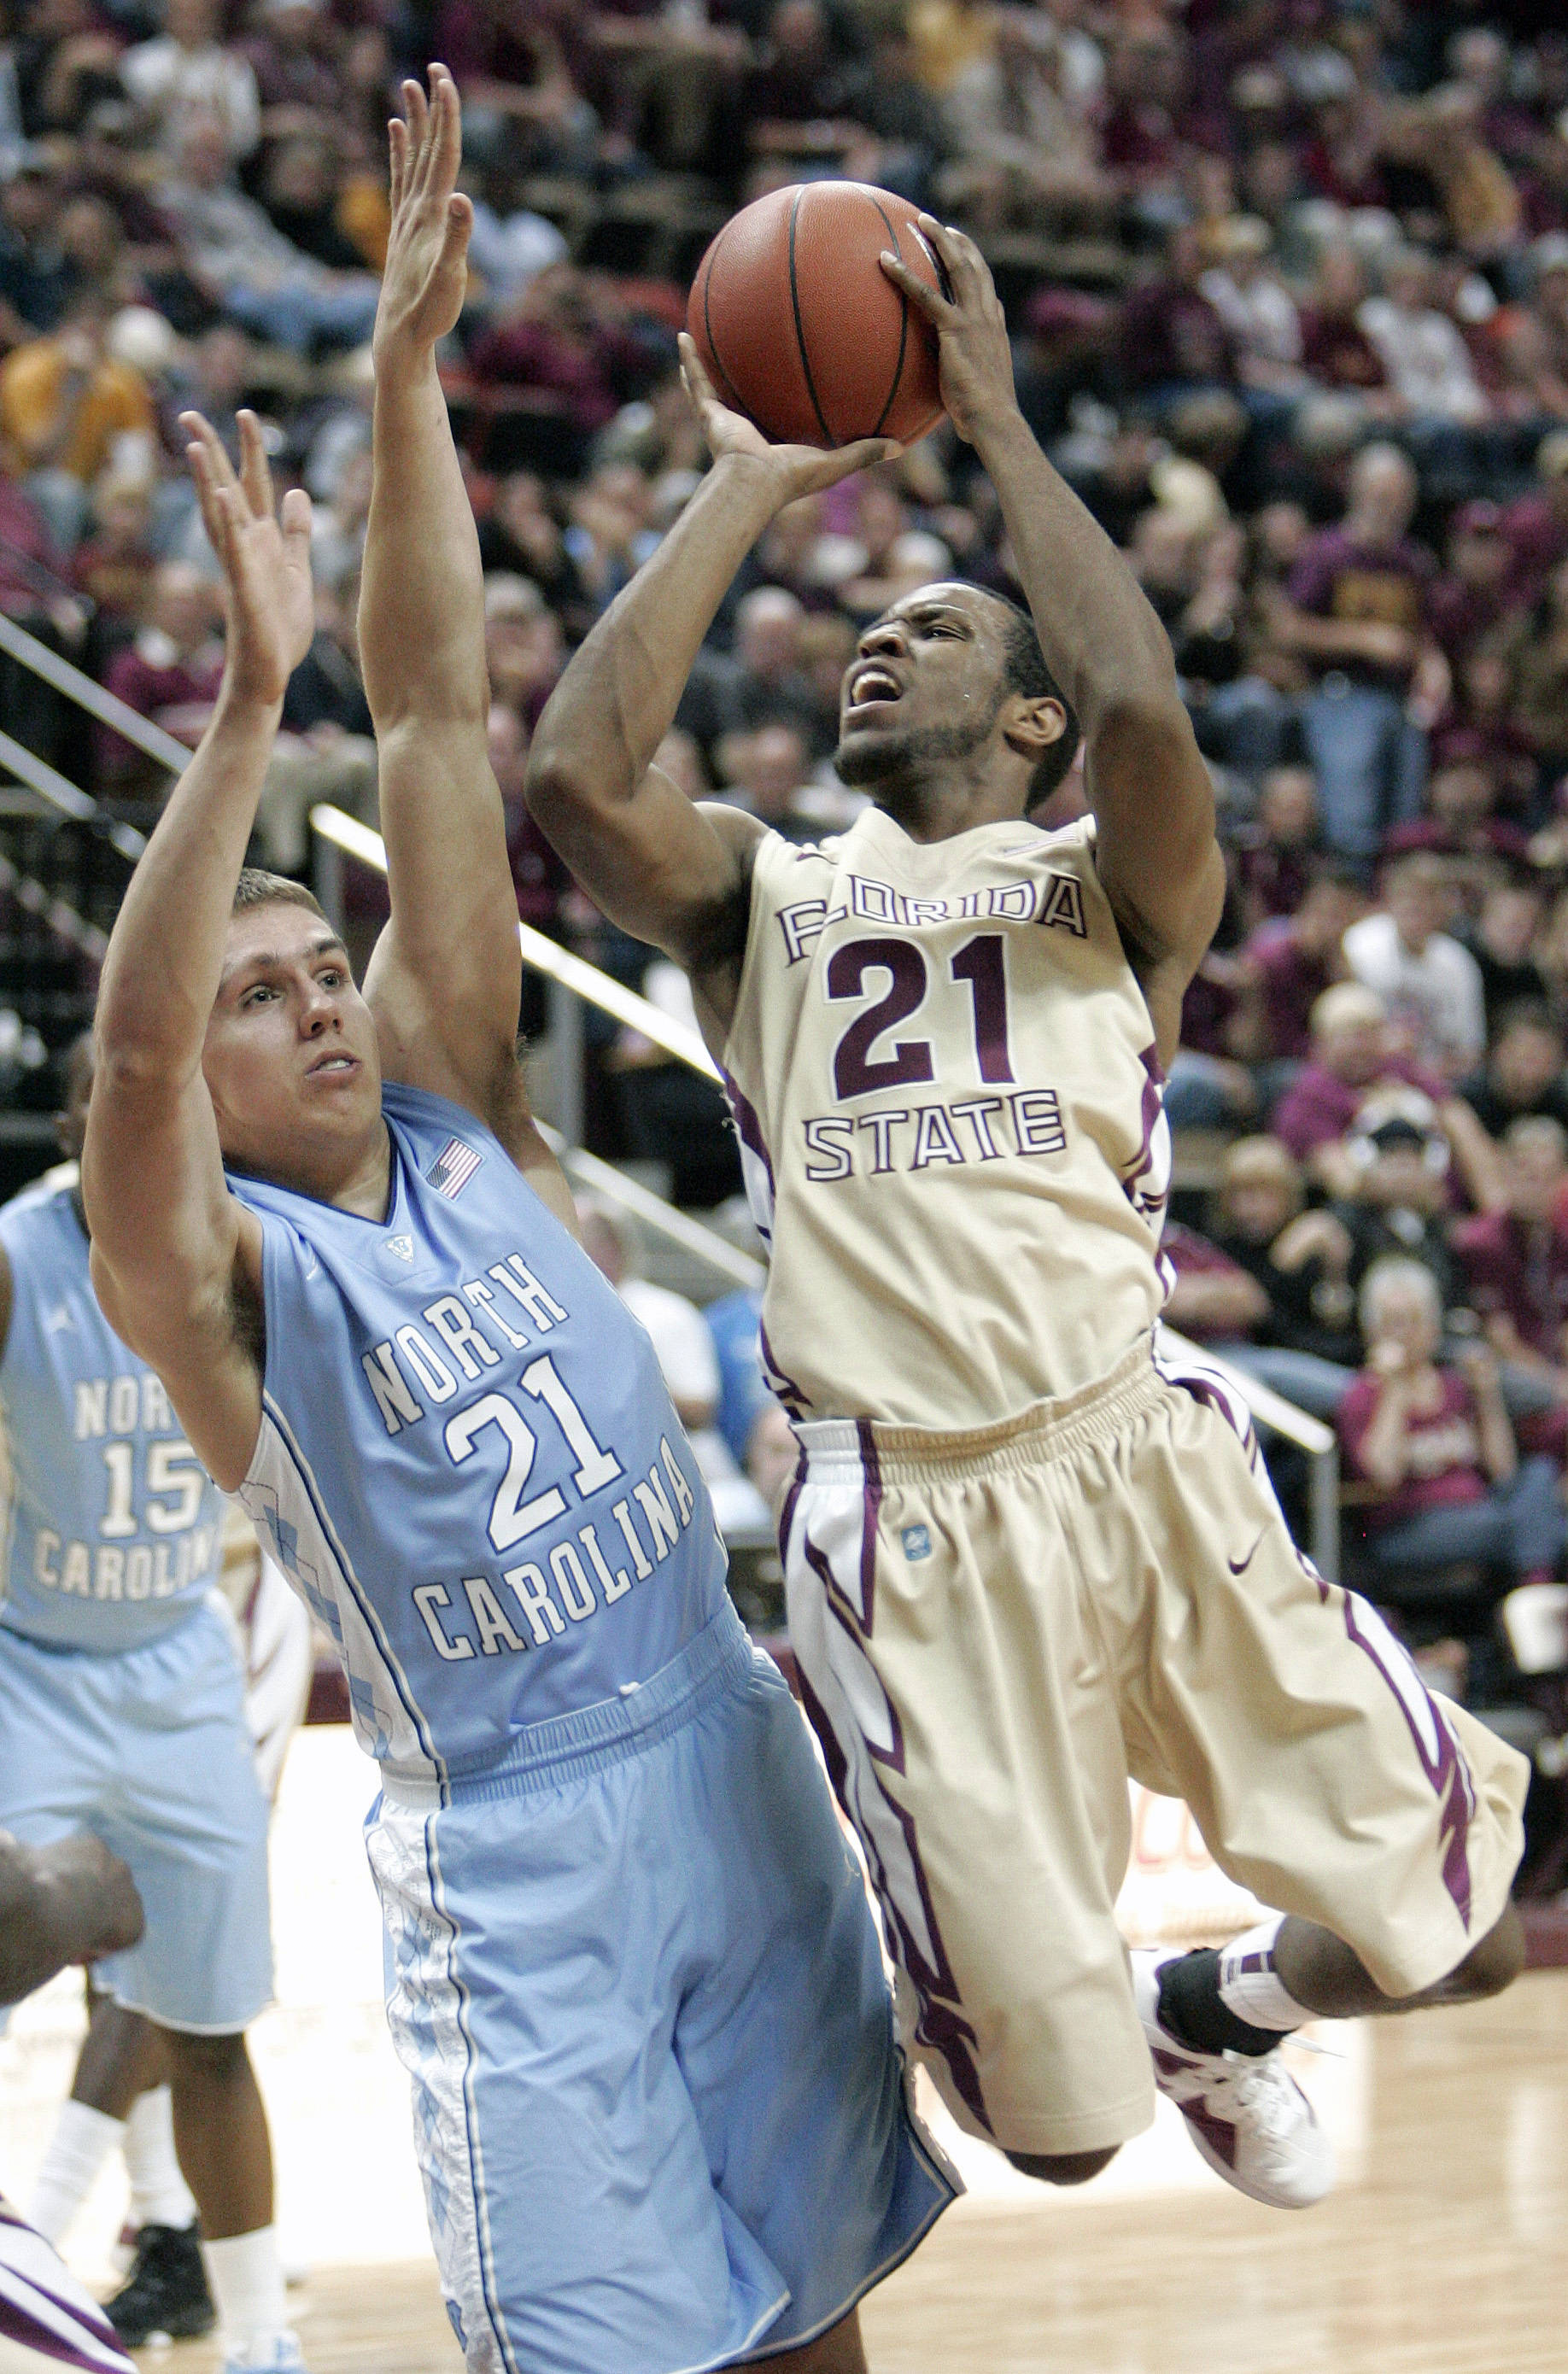 Florida State's Michael Snaer gets a shot off past the defense of North Carolina's Jackson Simmons during the second half of an NCAA college basketball game, Saturday, Jan. 14, 2012 in Tallahassee, Fla.(AP Photo/Steve Cannon)